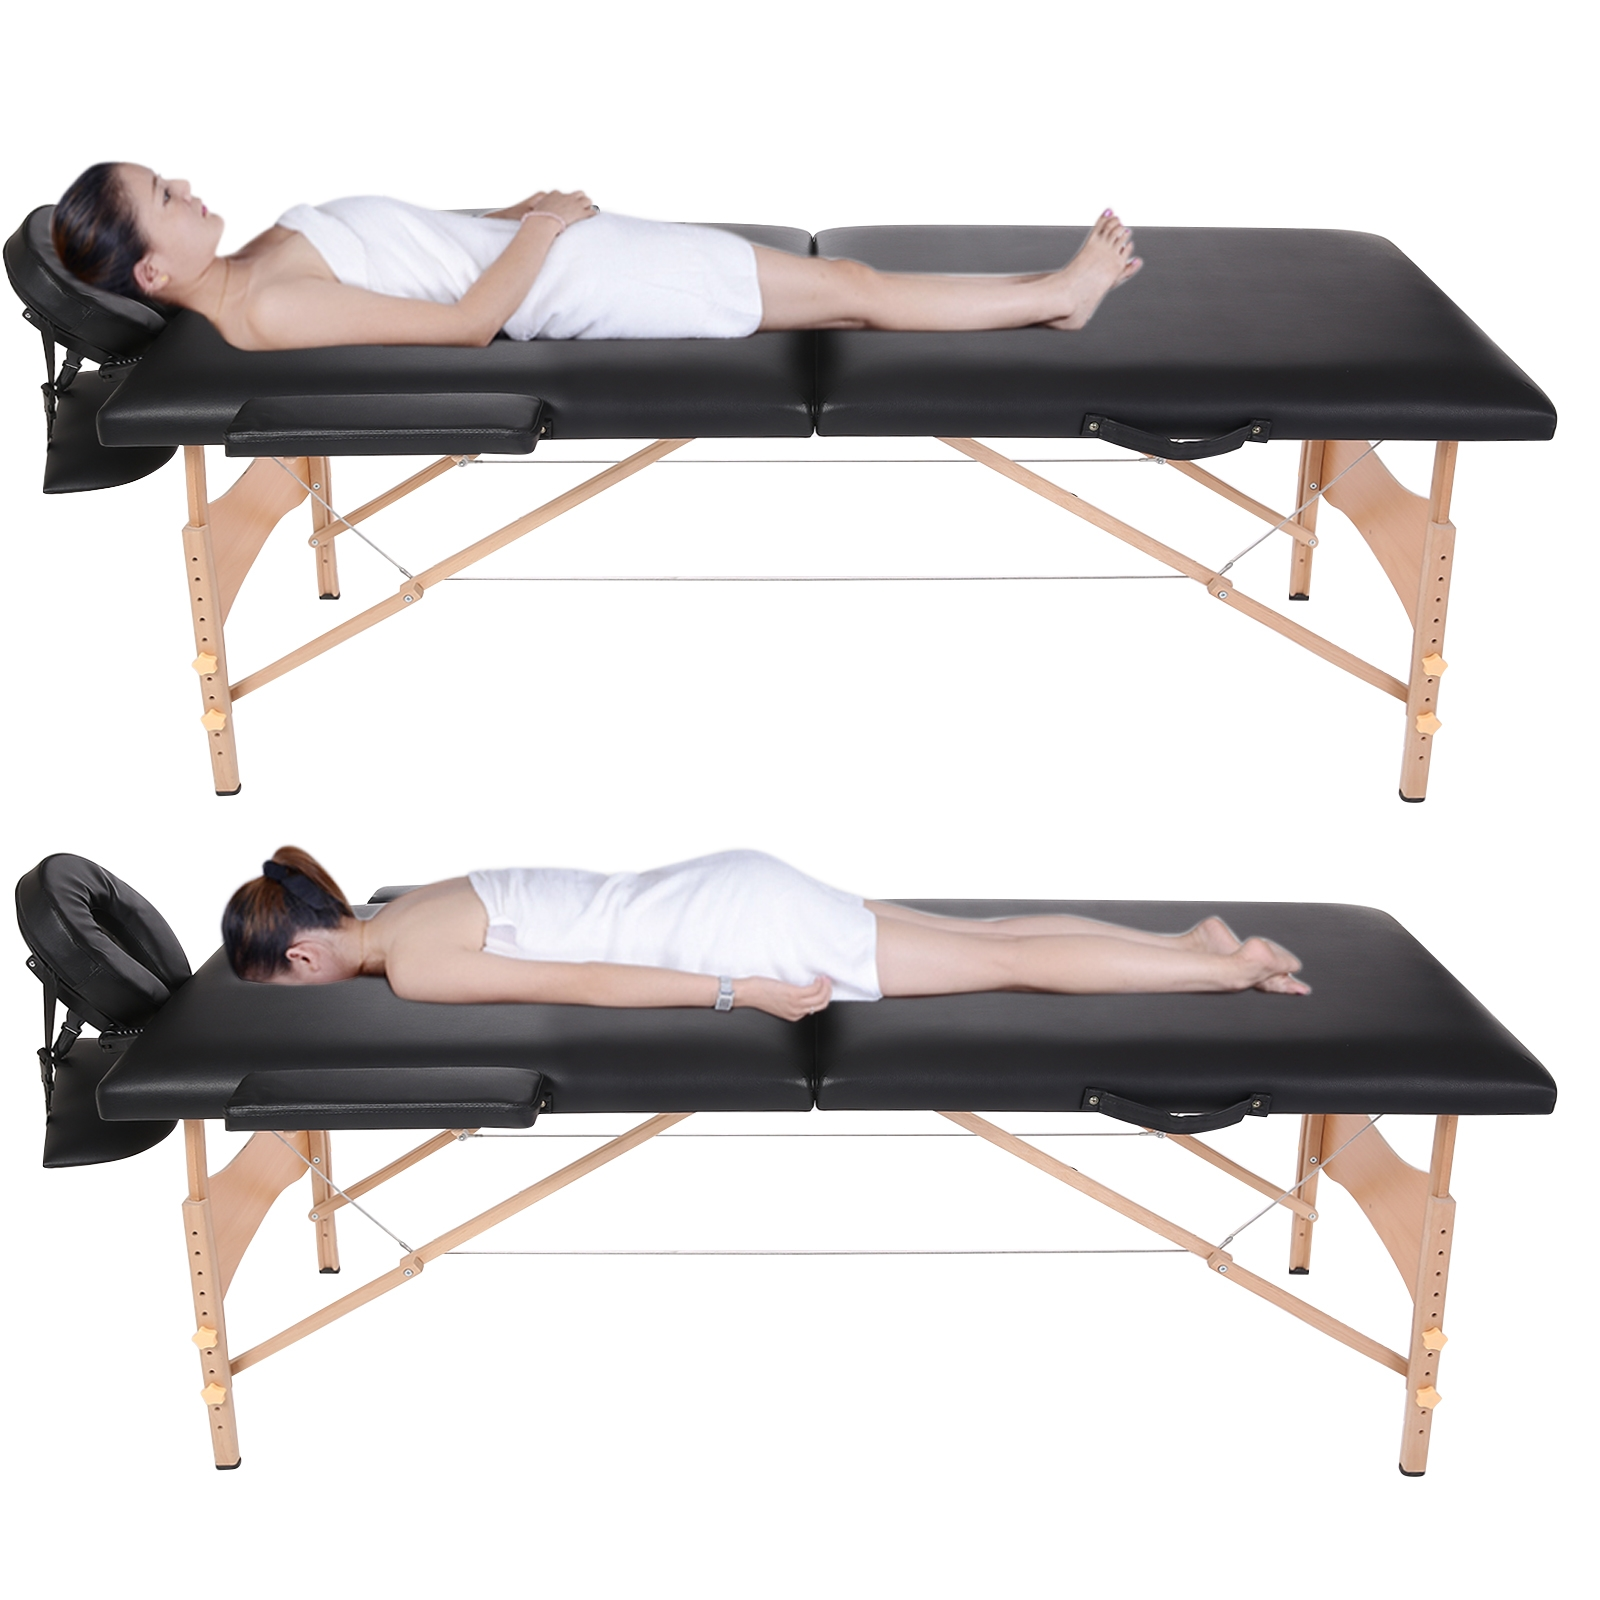 Portable Massage Table Two-Fold Pad Chair Bed Spa with Ca...